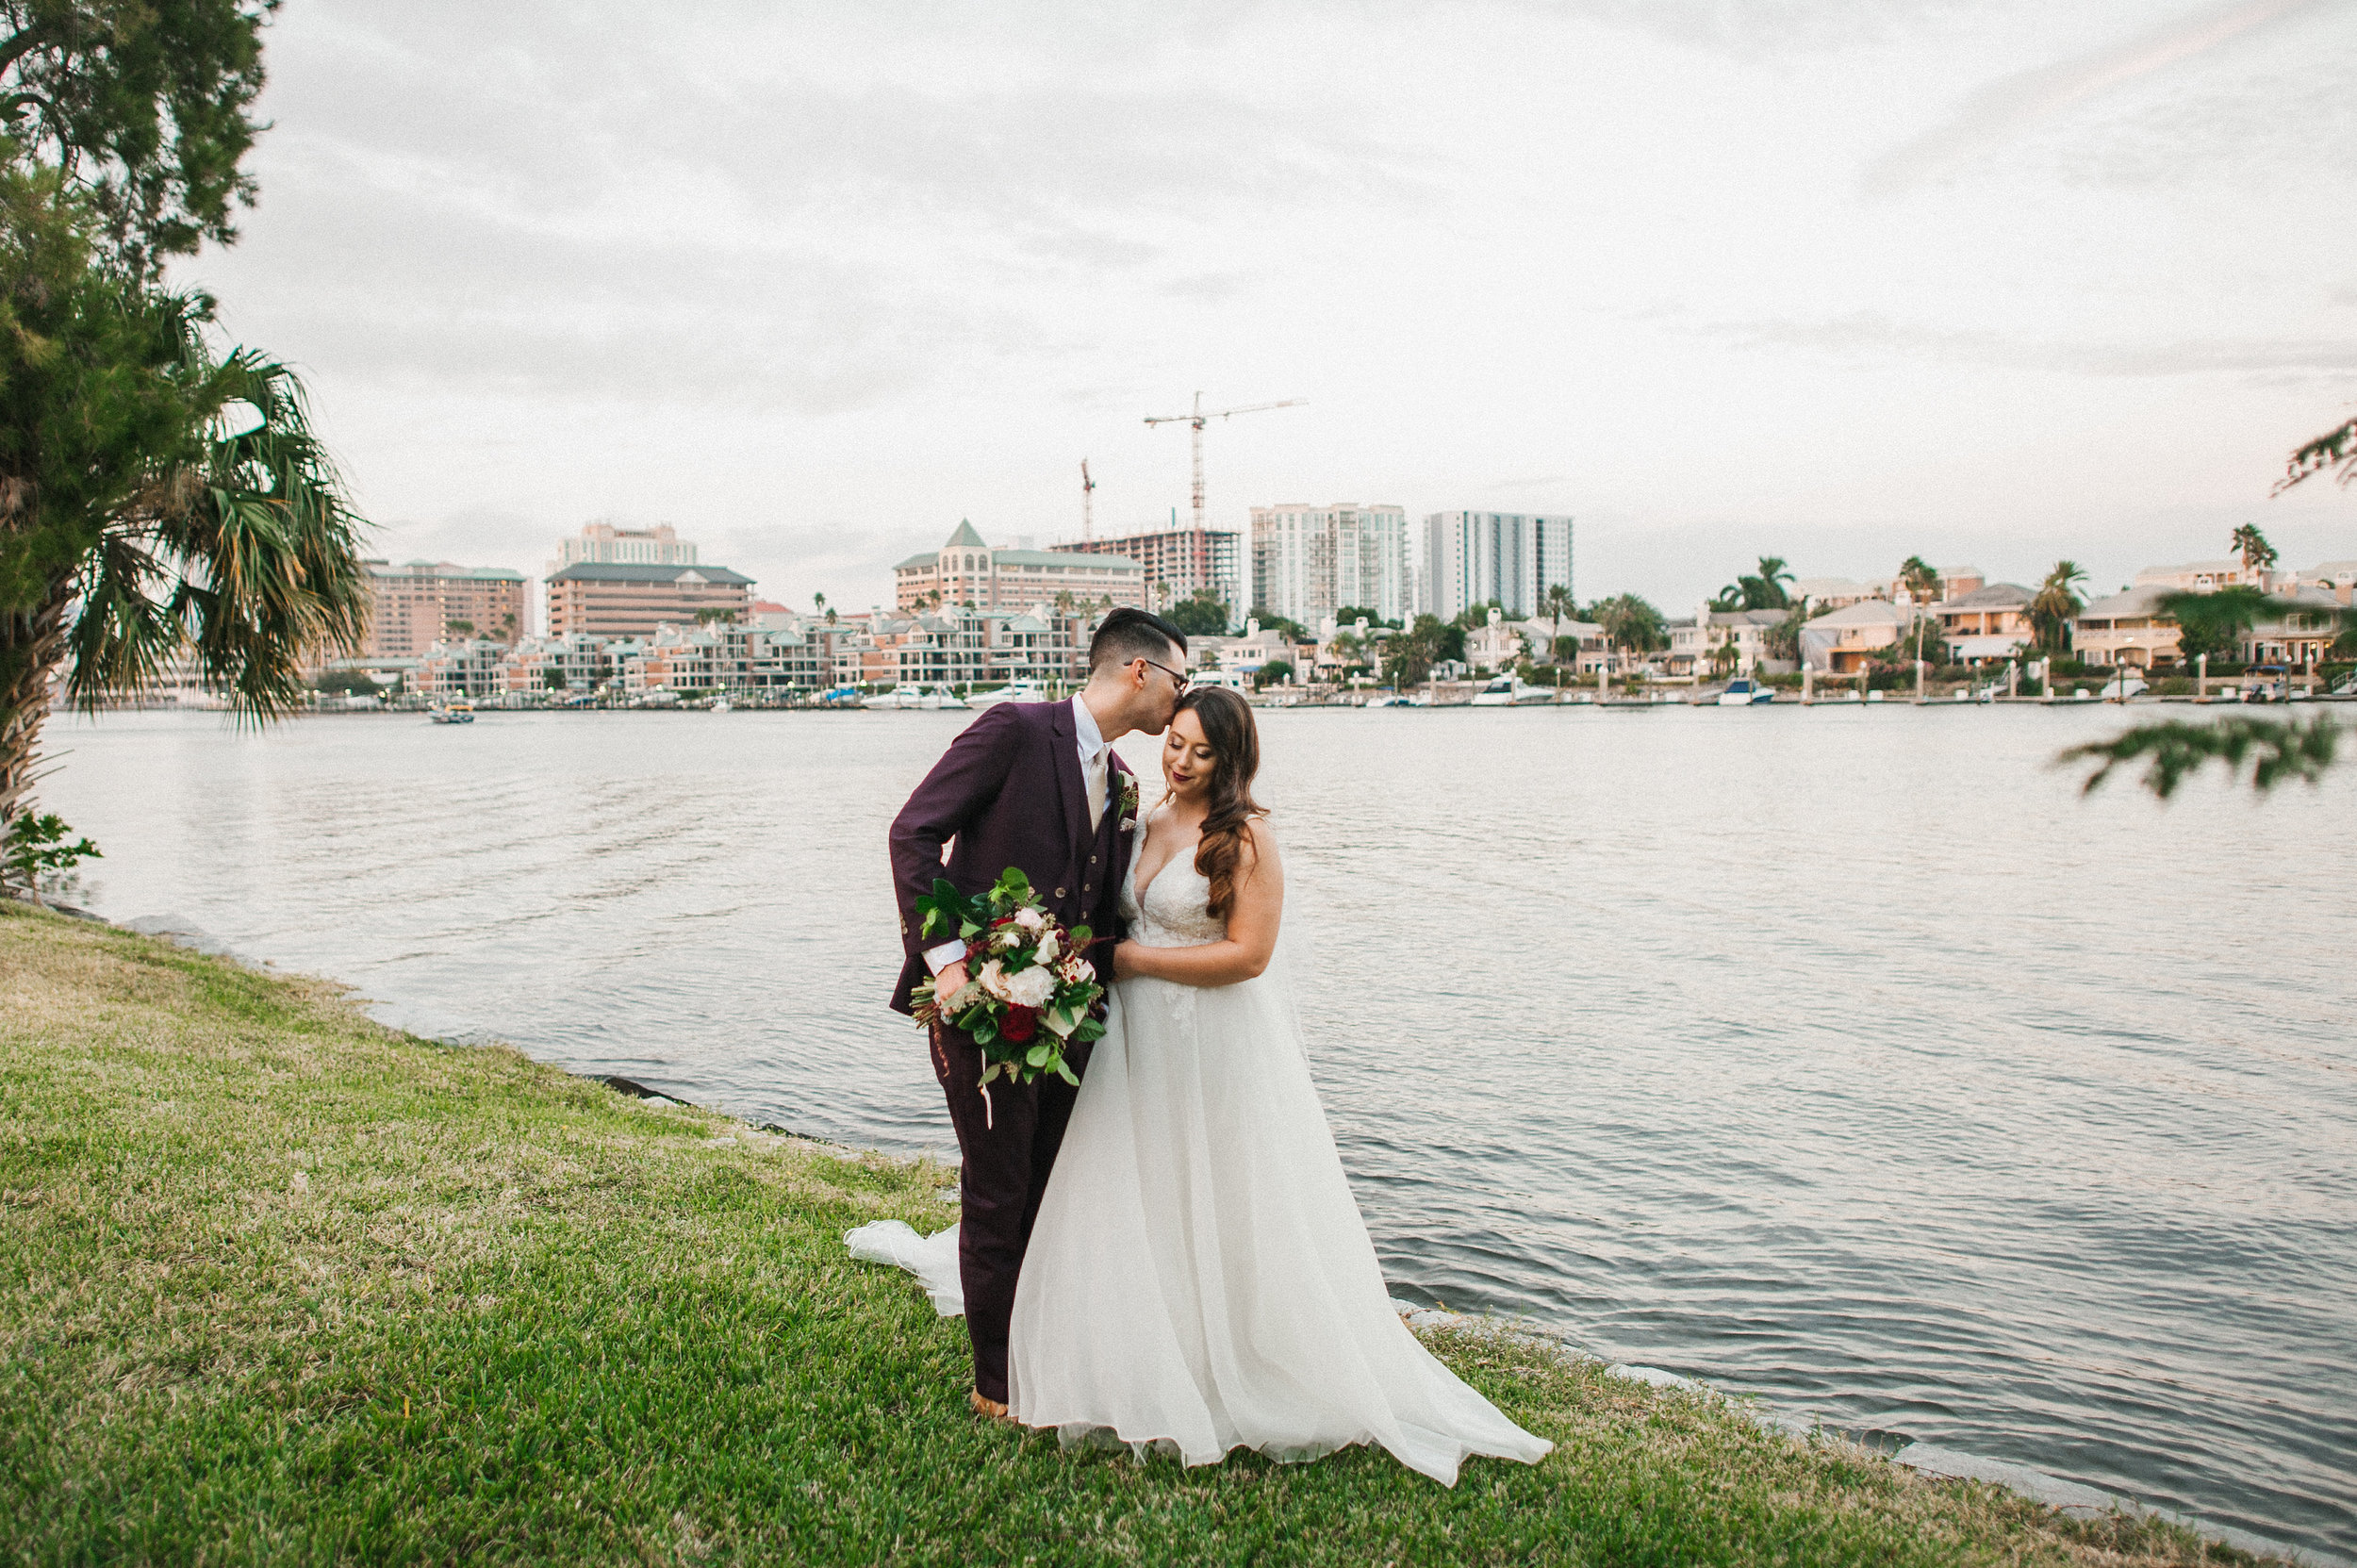 The couple looked stunning together (and completely in love) against the Davis Islands Garden Club waterfront backdrop.